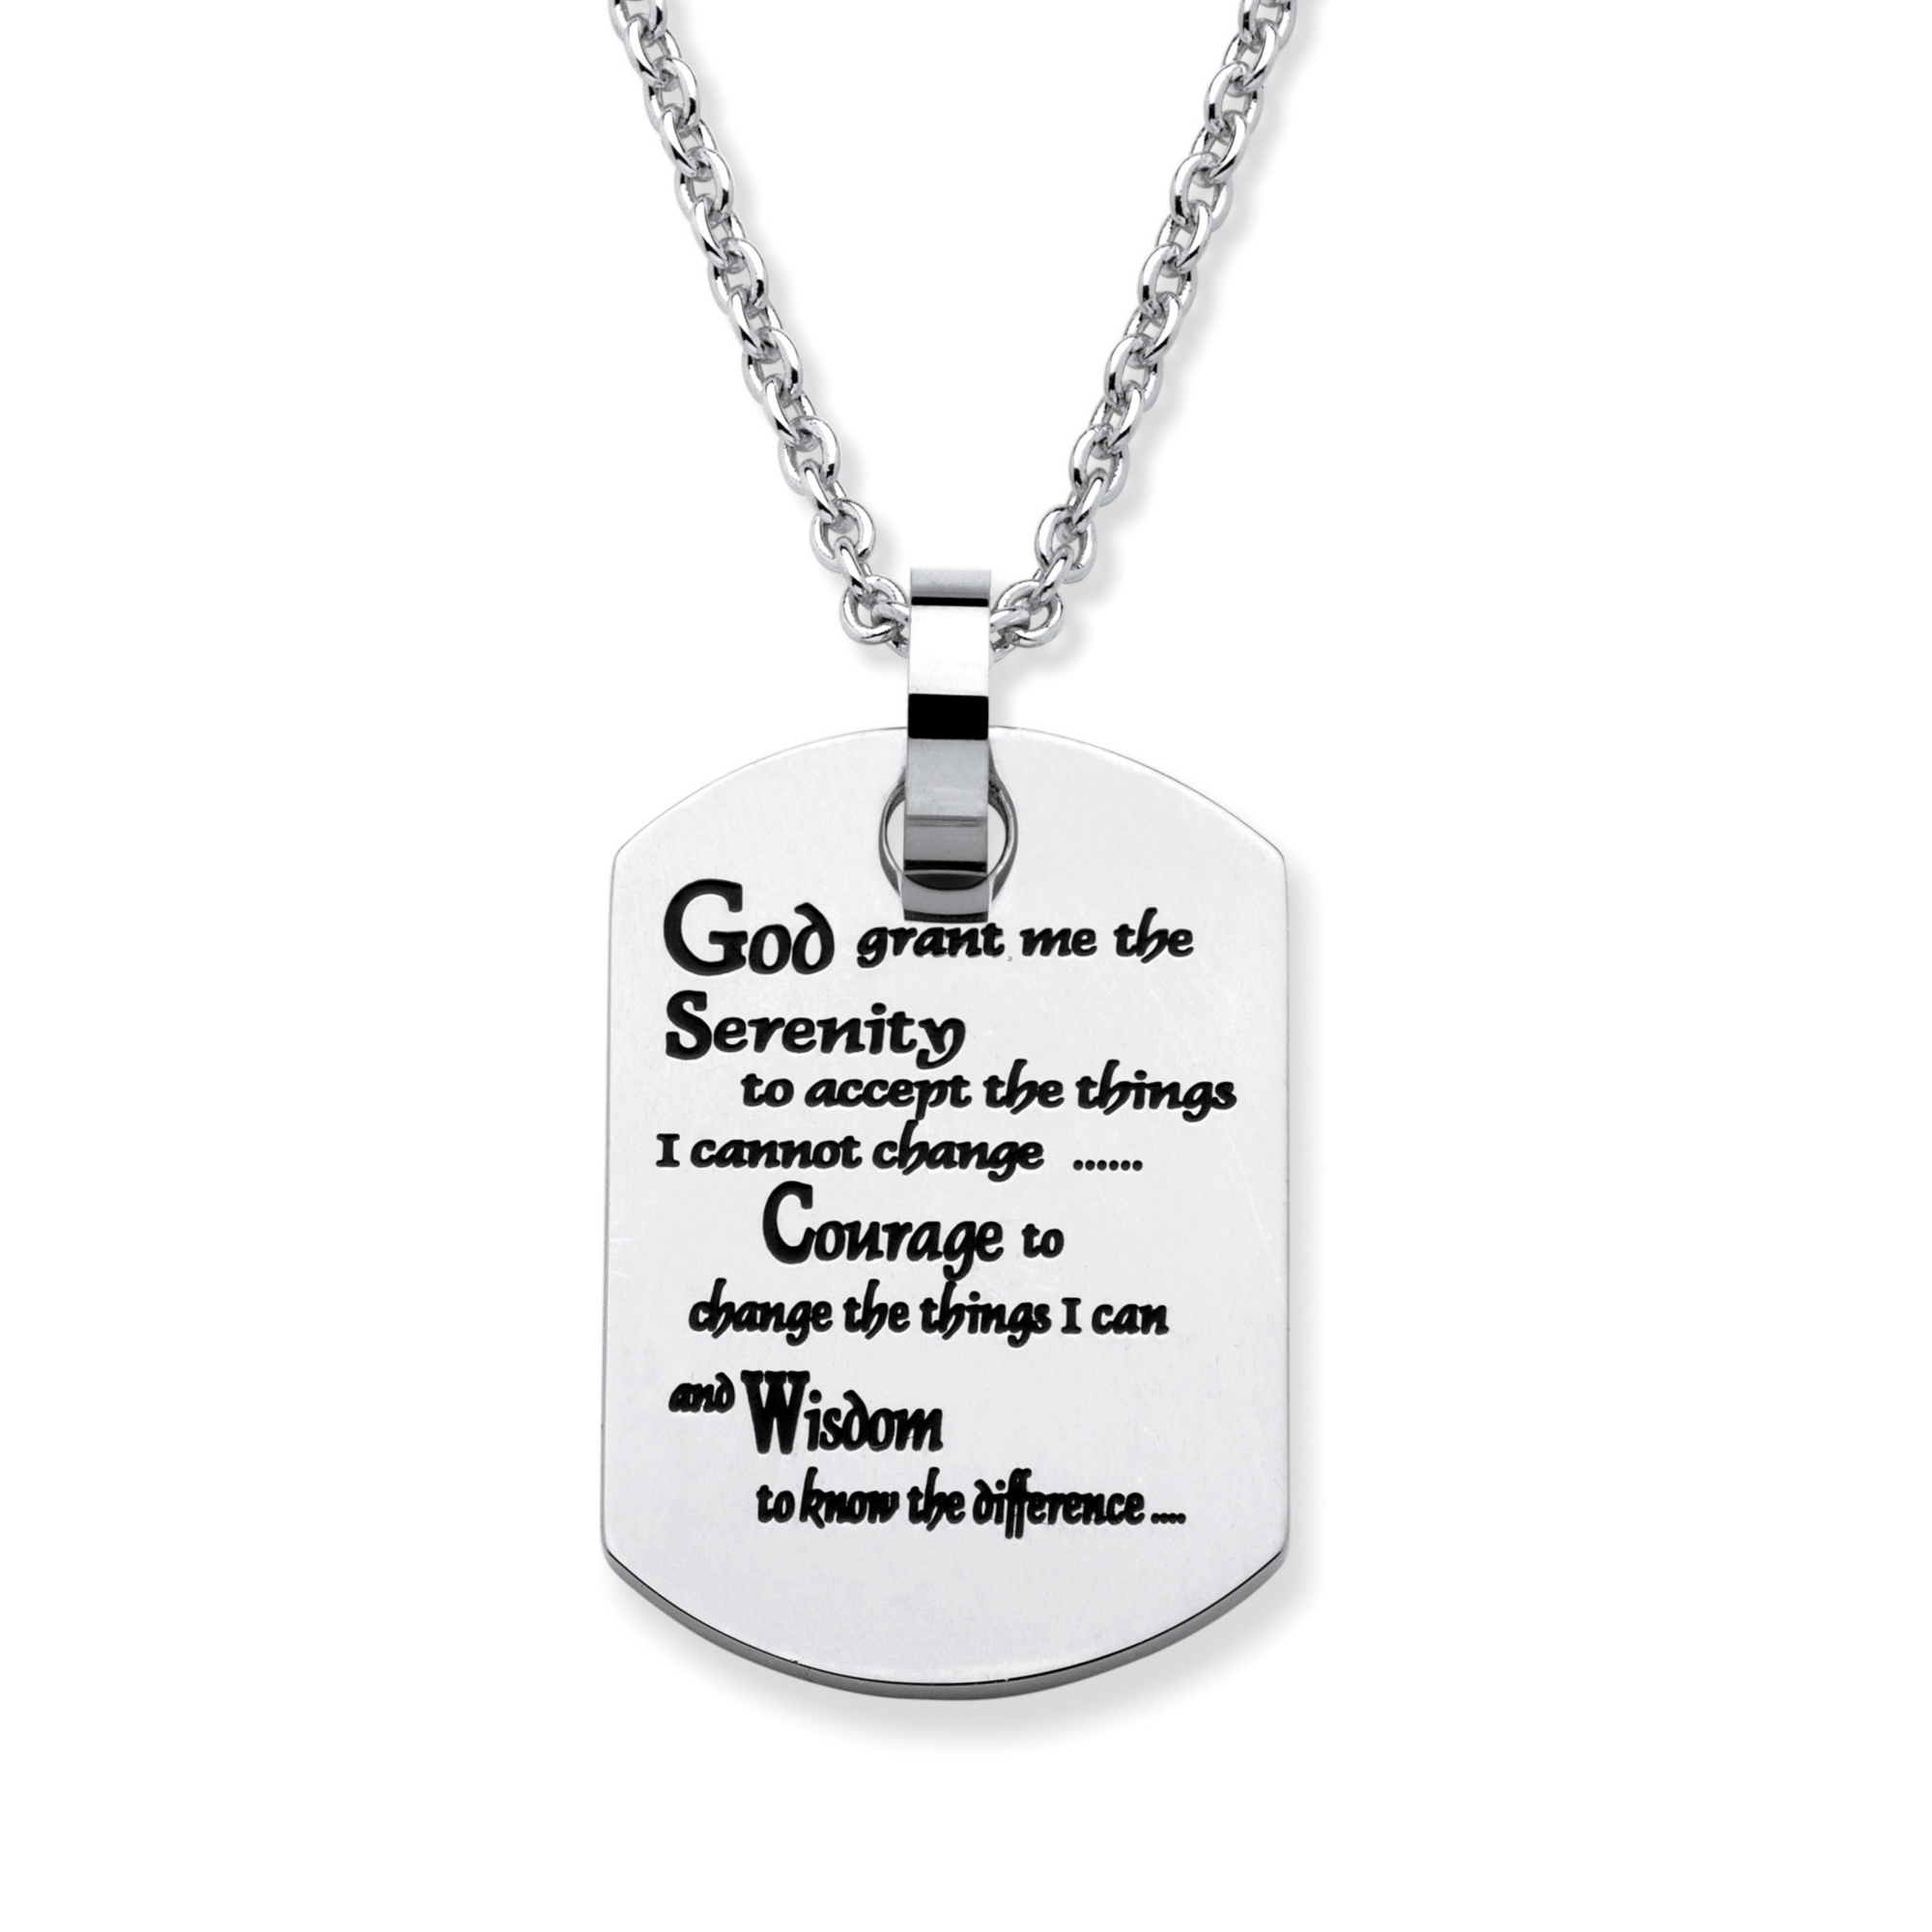 box cross necklace to login serenity prayer price wholesale sterling silver l see